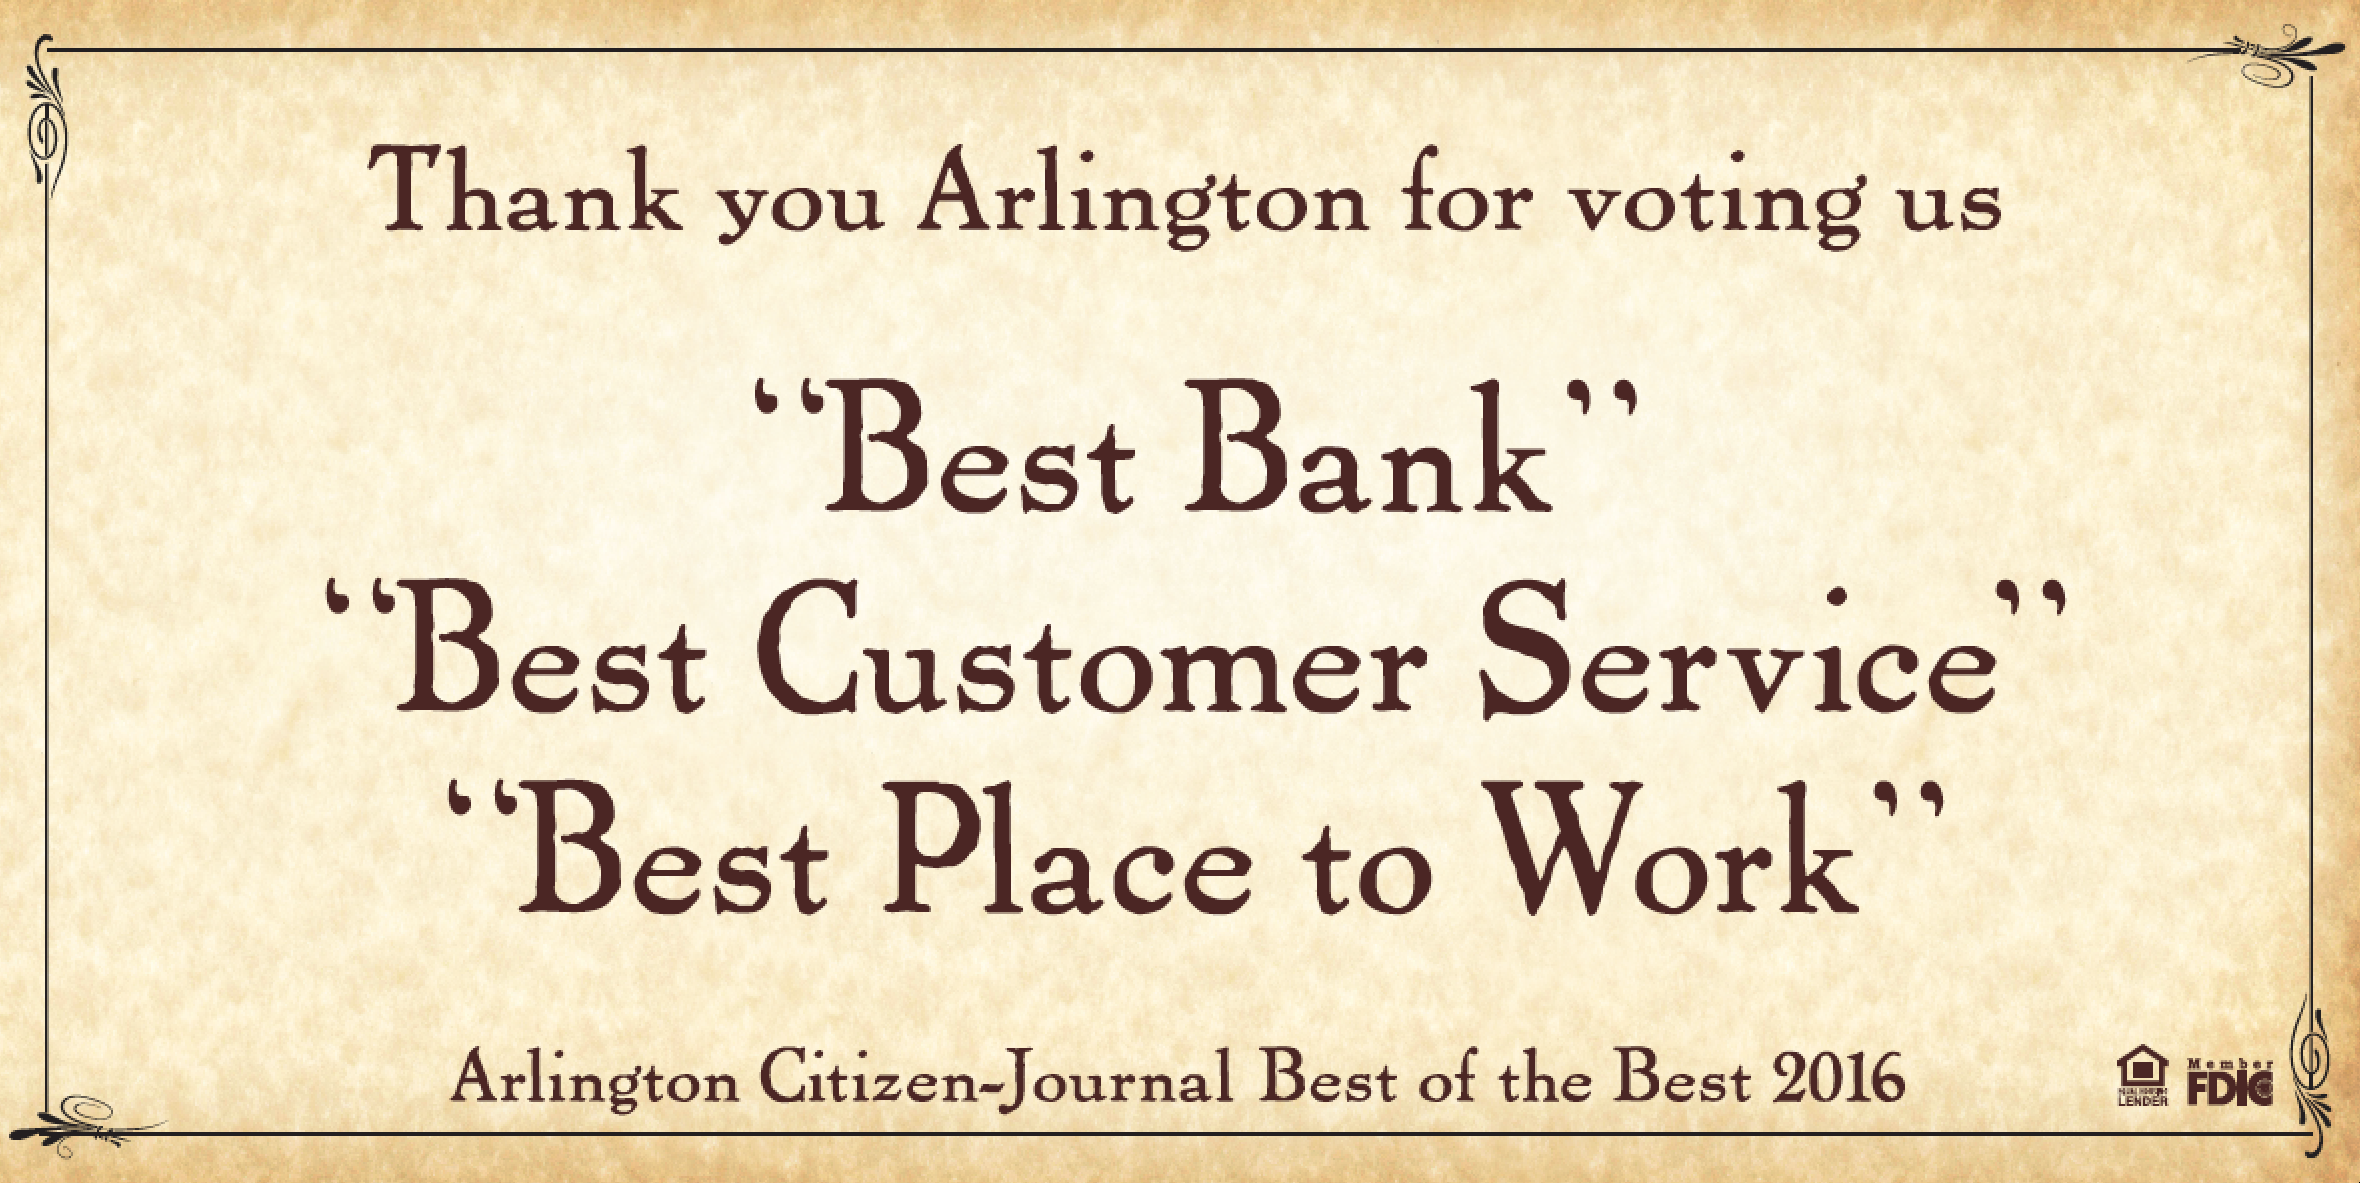 Arlington Citizen-Journal Best of the Best 2016